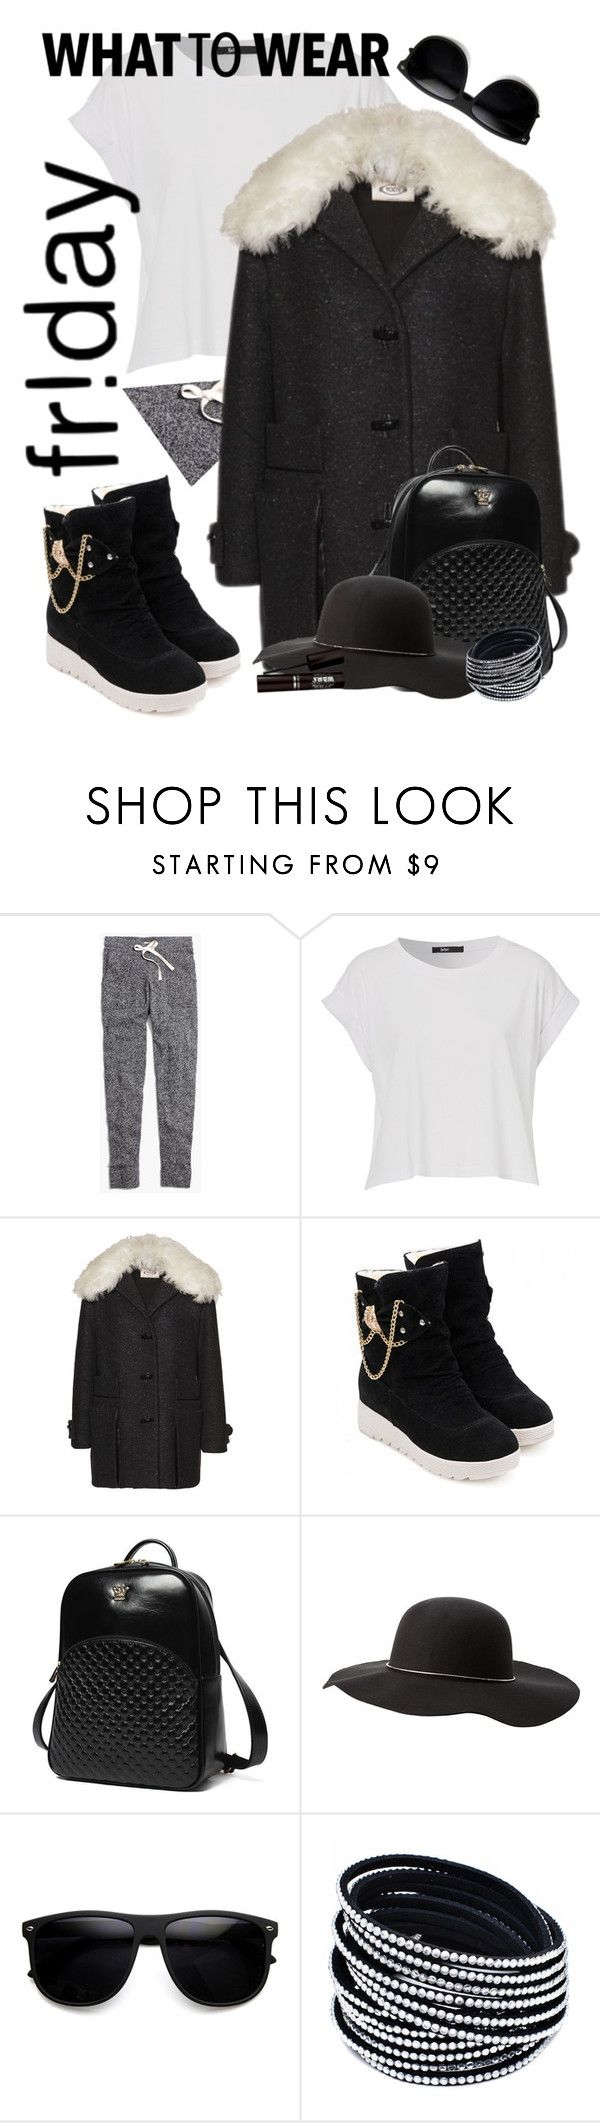 """""""Black Friday"""" by nieboskakara ❤ liked on Polyvore featuring Madewell, Tod's, Princess Carousel and Charlotte Russe"""